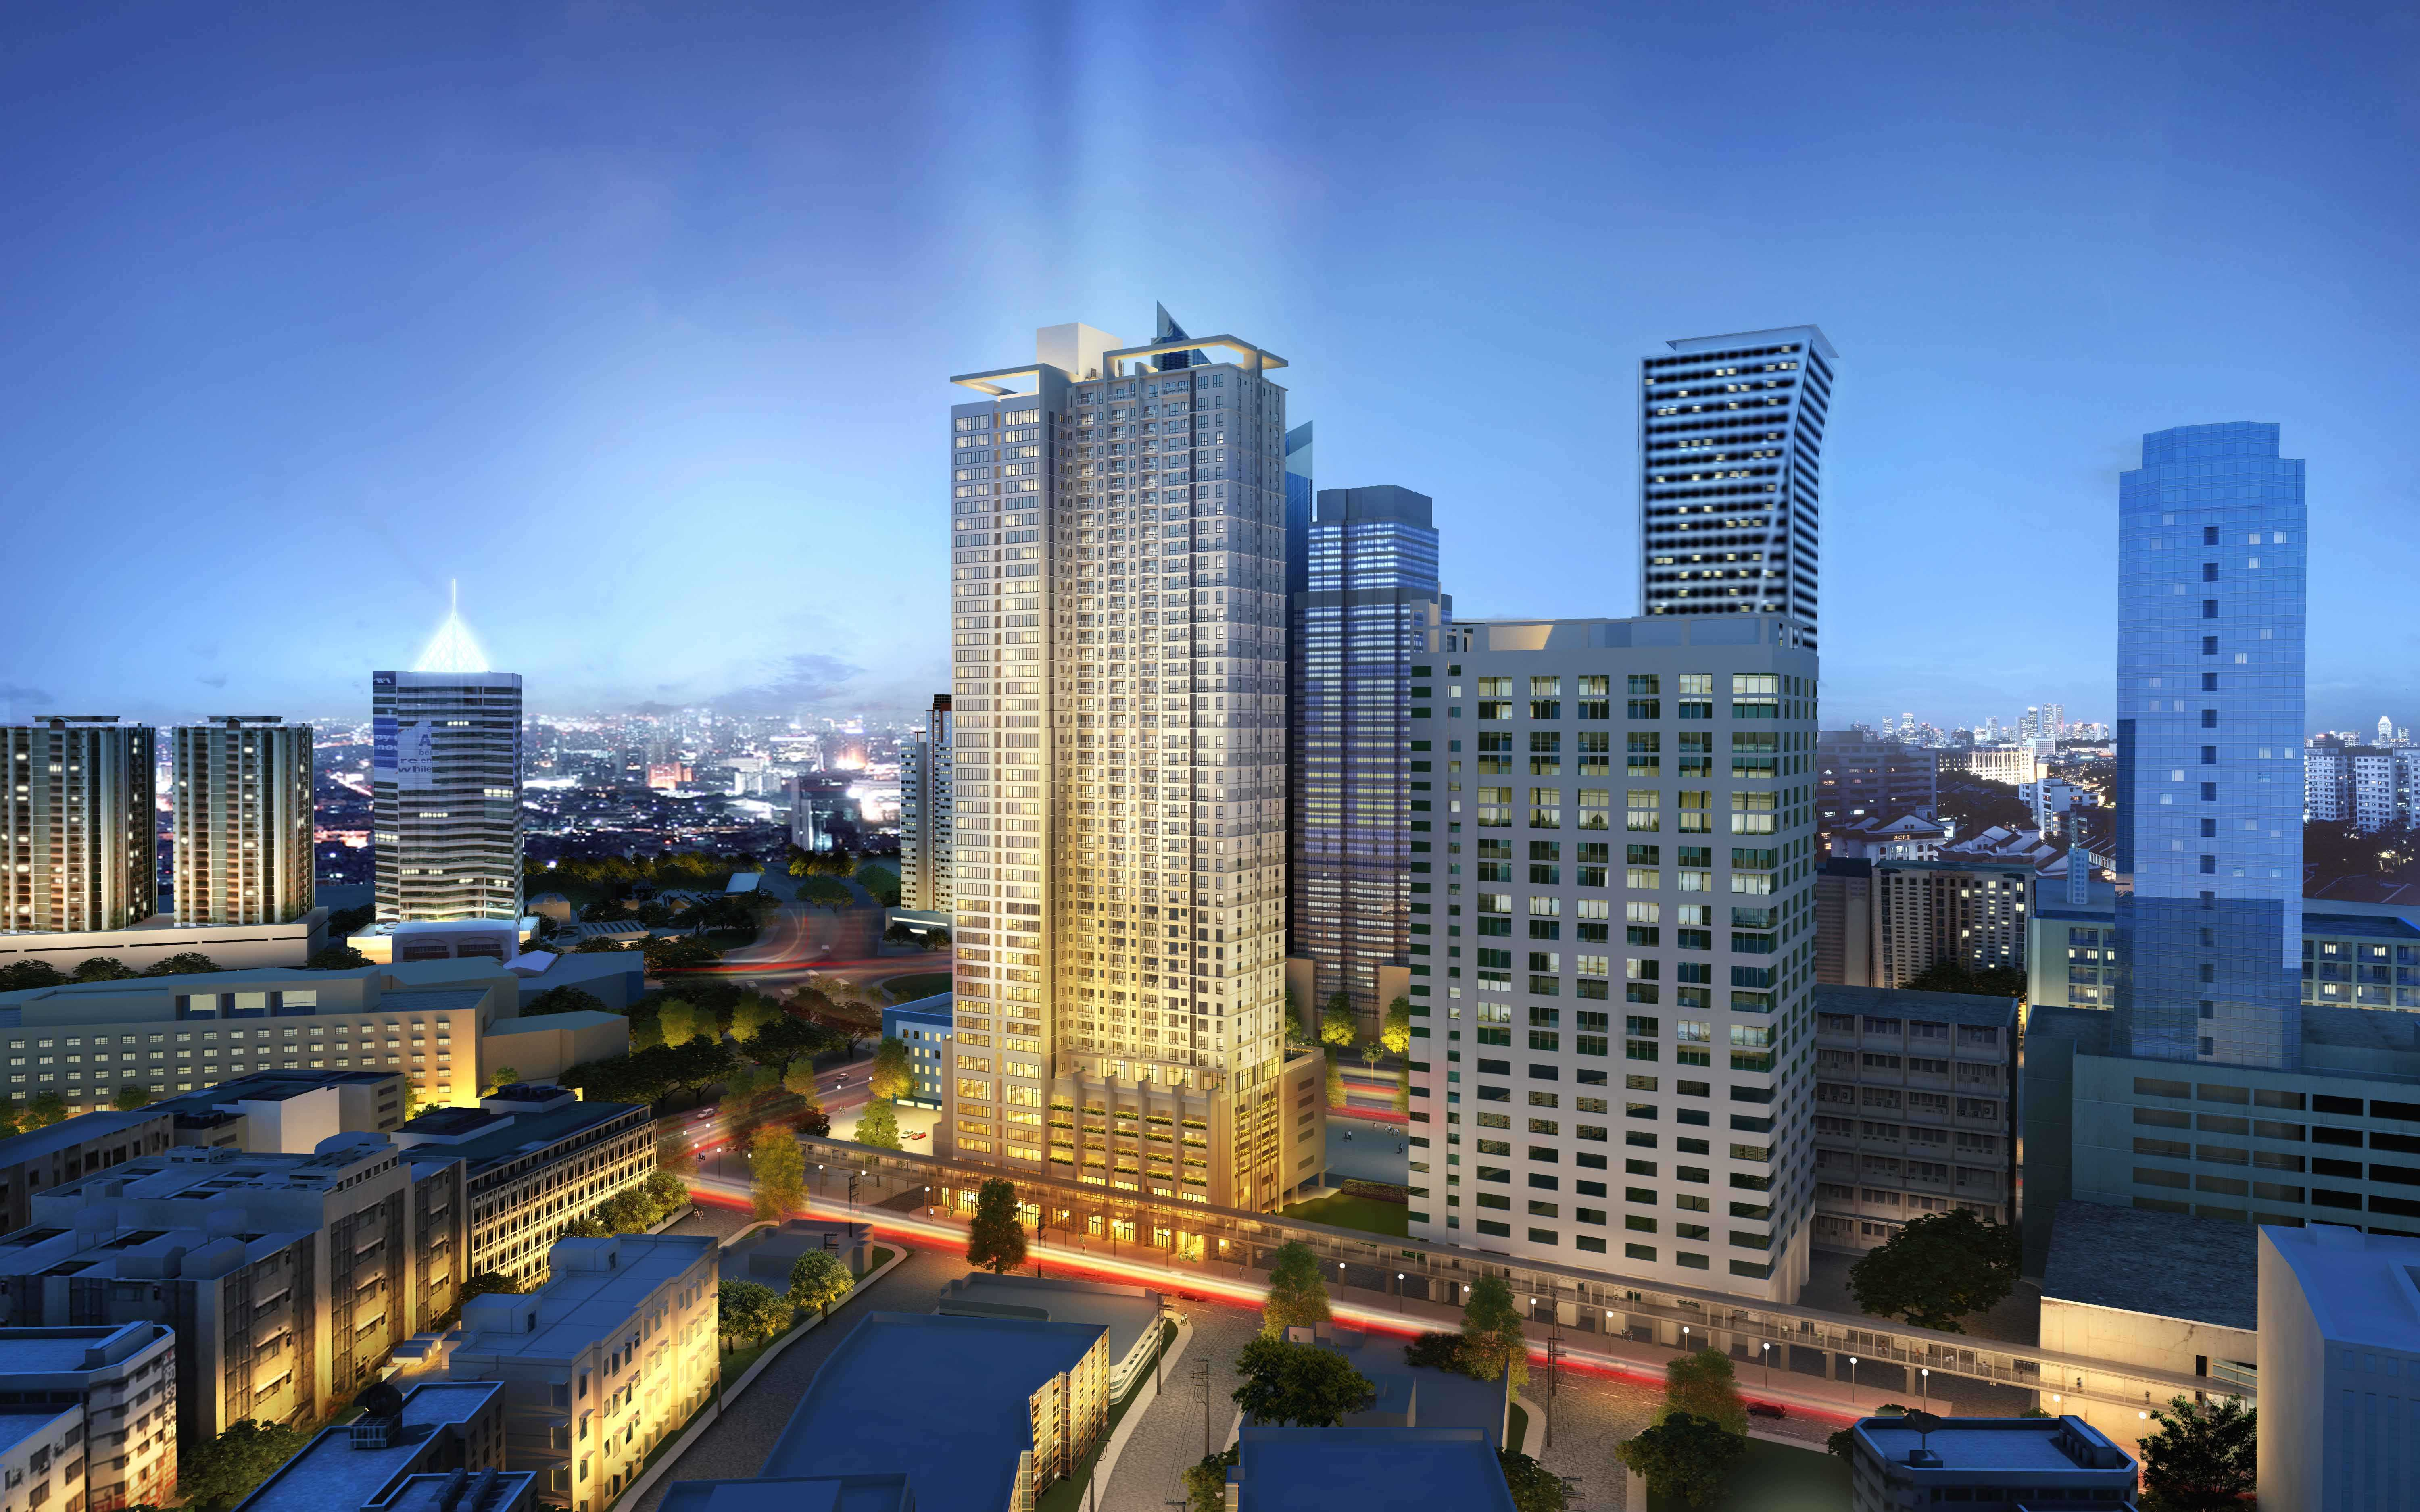 https://www.alveoland.com.ph/images/article/images/kroma%20tower%20condo%20in%20makati-1600858840188.jpg